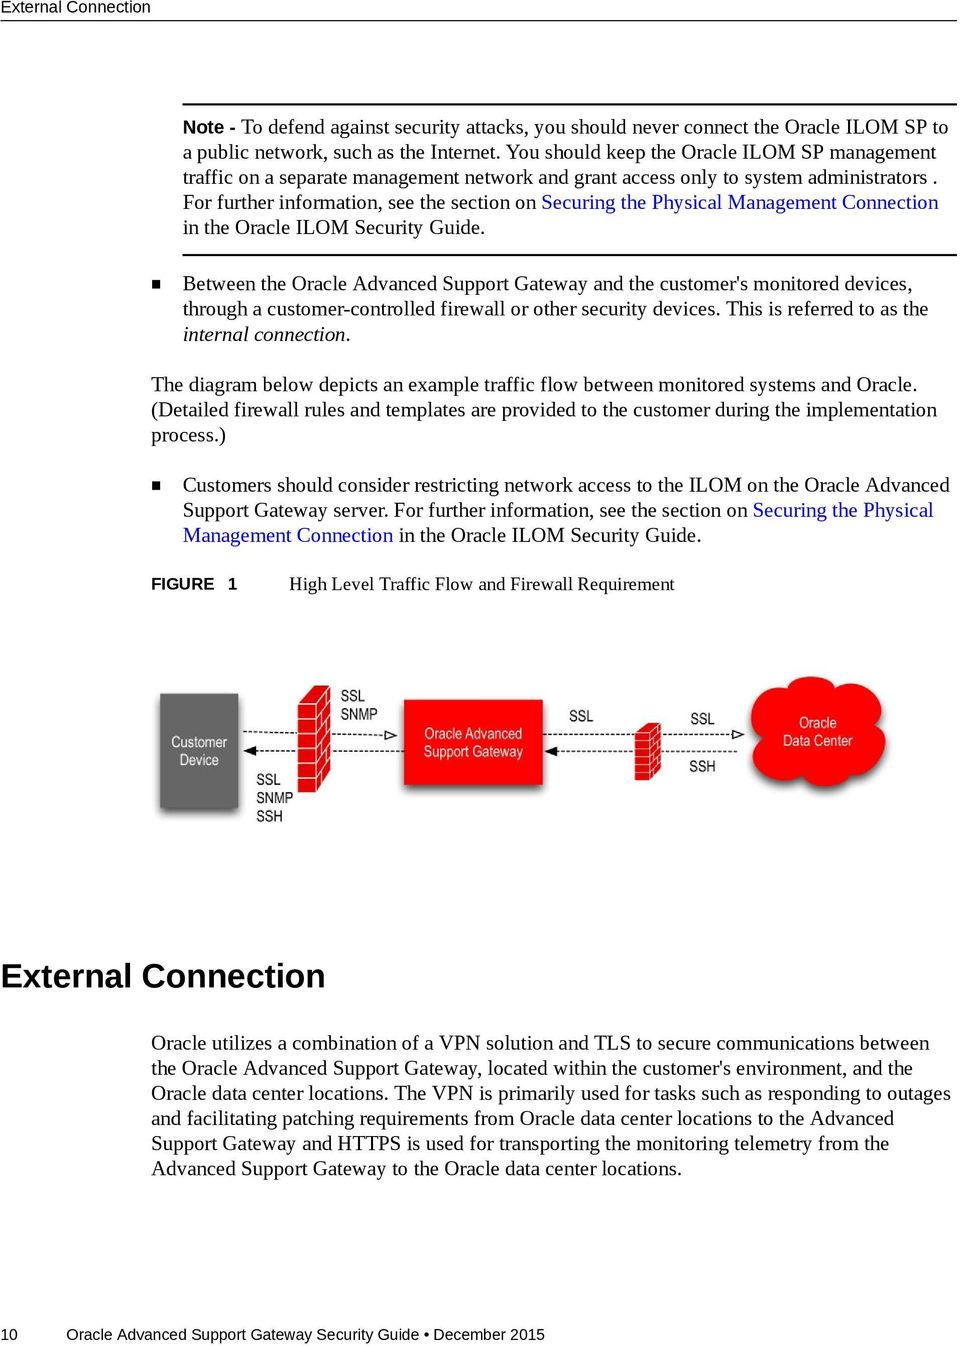 Oracle Advanced Support Gateway Security Guide - PDF